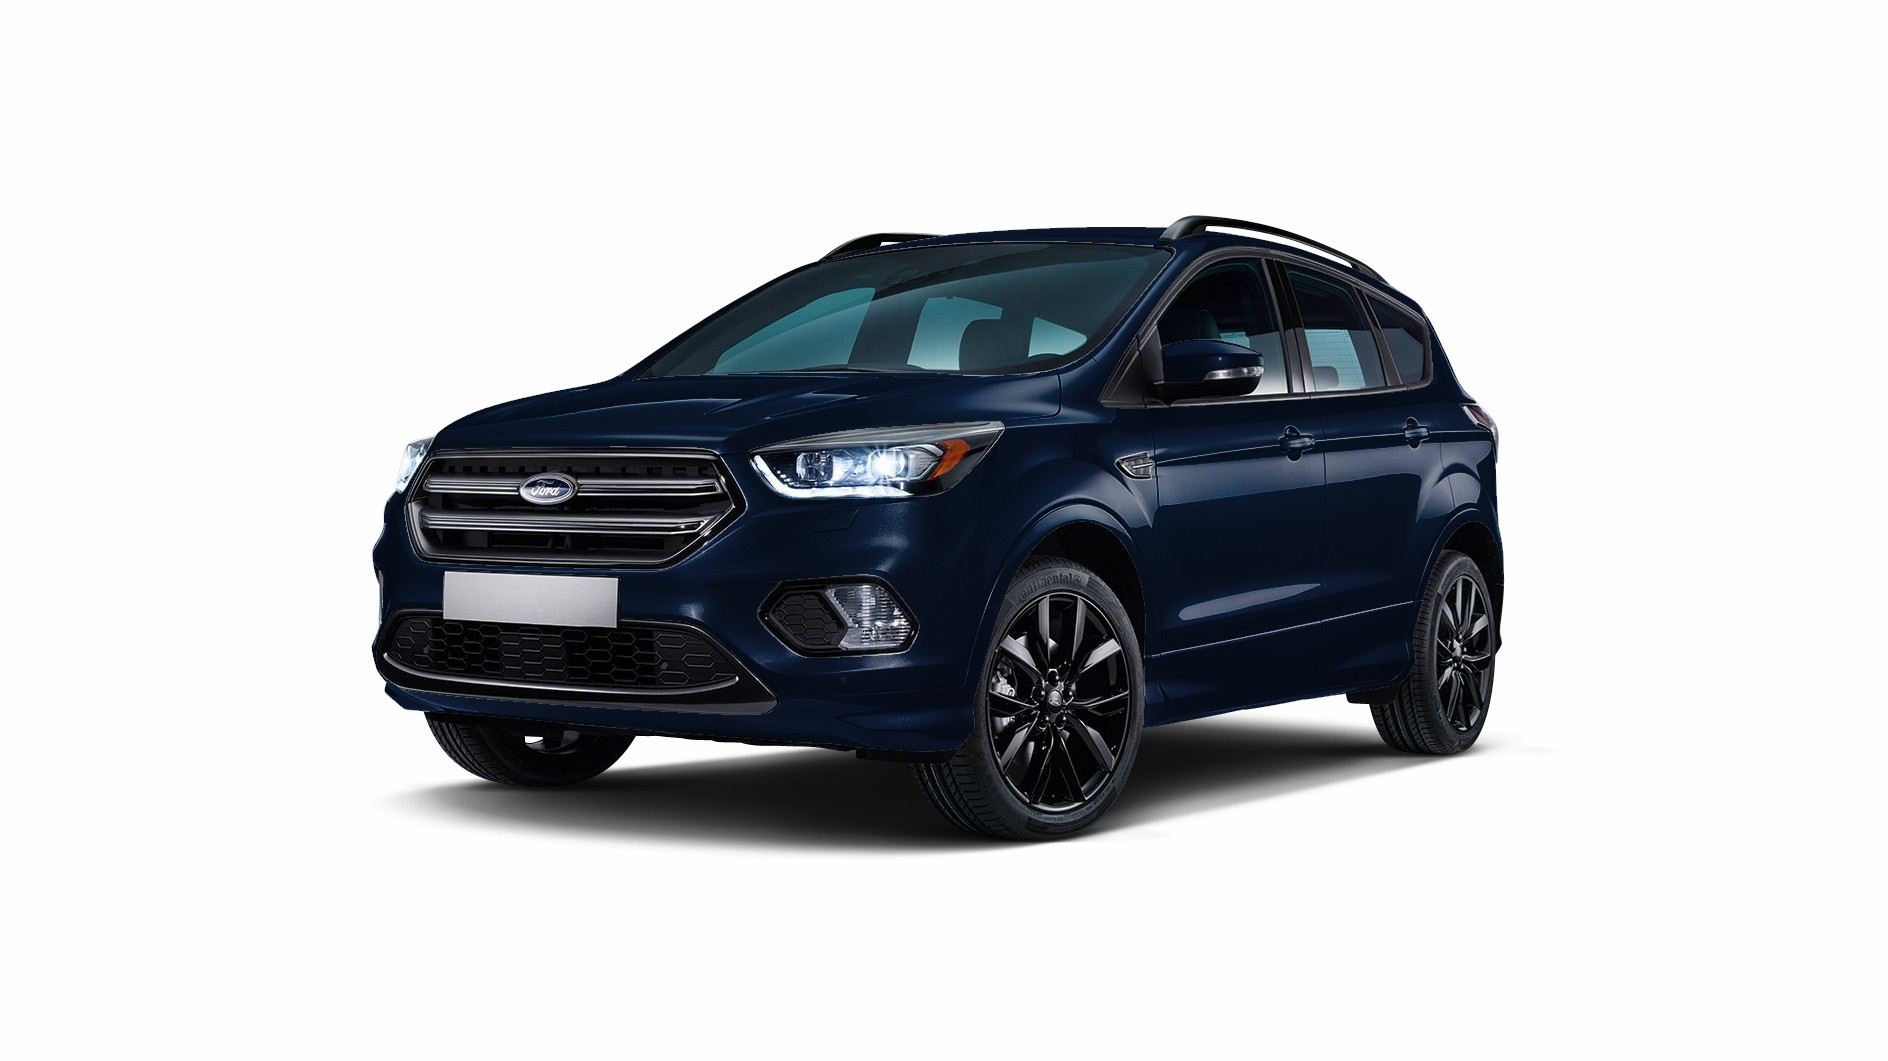 ford kuga nouveau 4x4 et suv 5 portes essence 1 5 ecoboost 182 auto 4x4 bo te. Black Bedroom Furniture Sets. Home Design Ideas